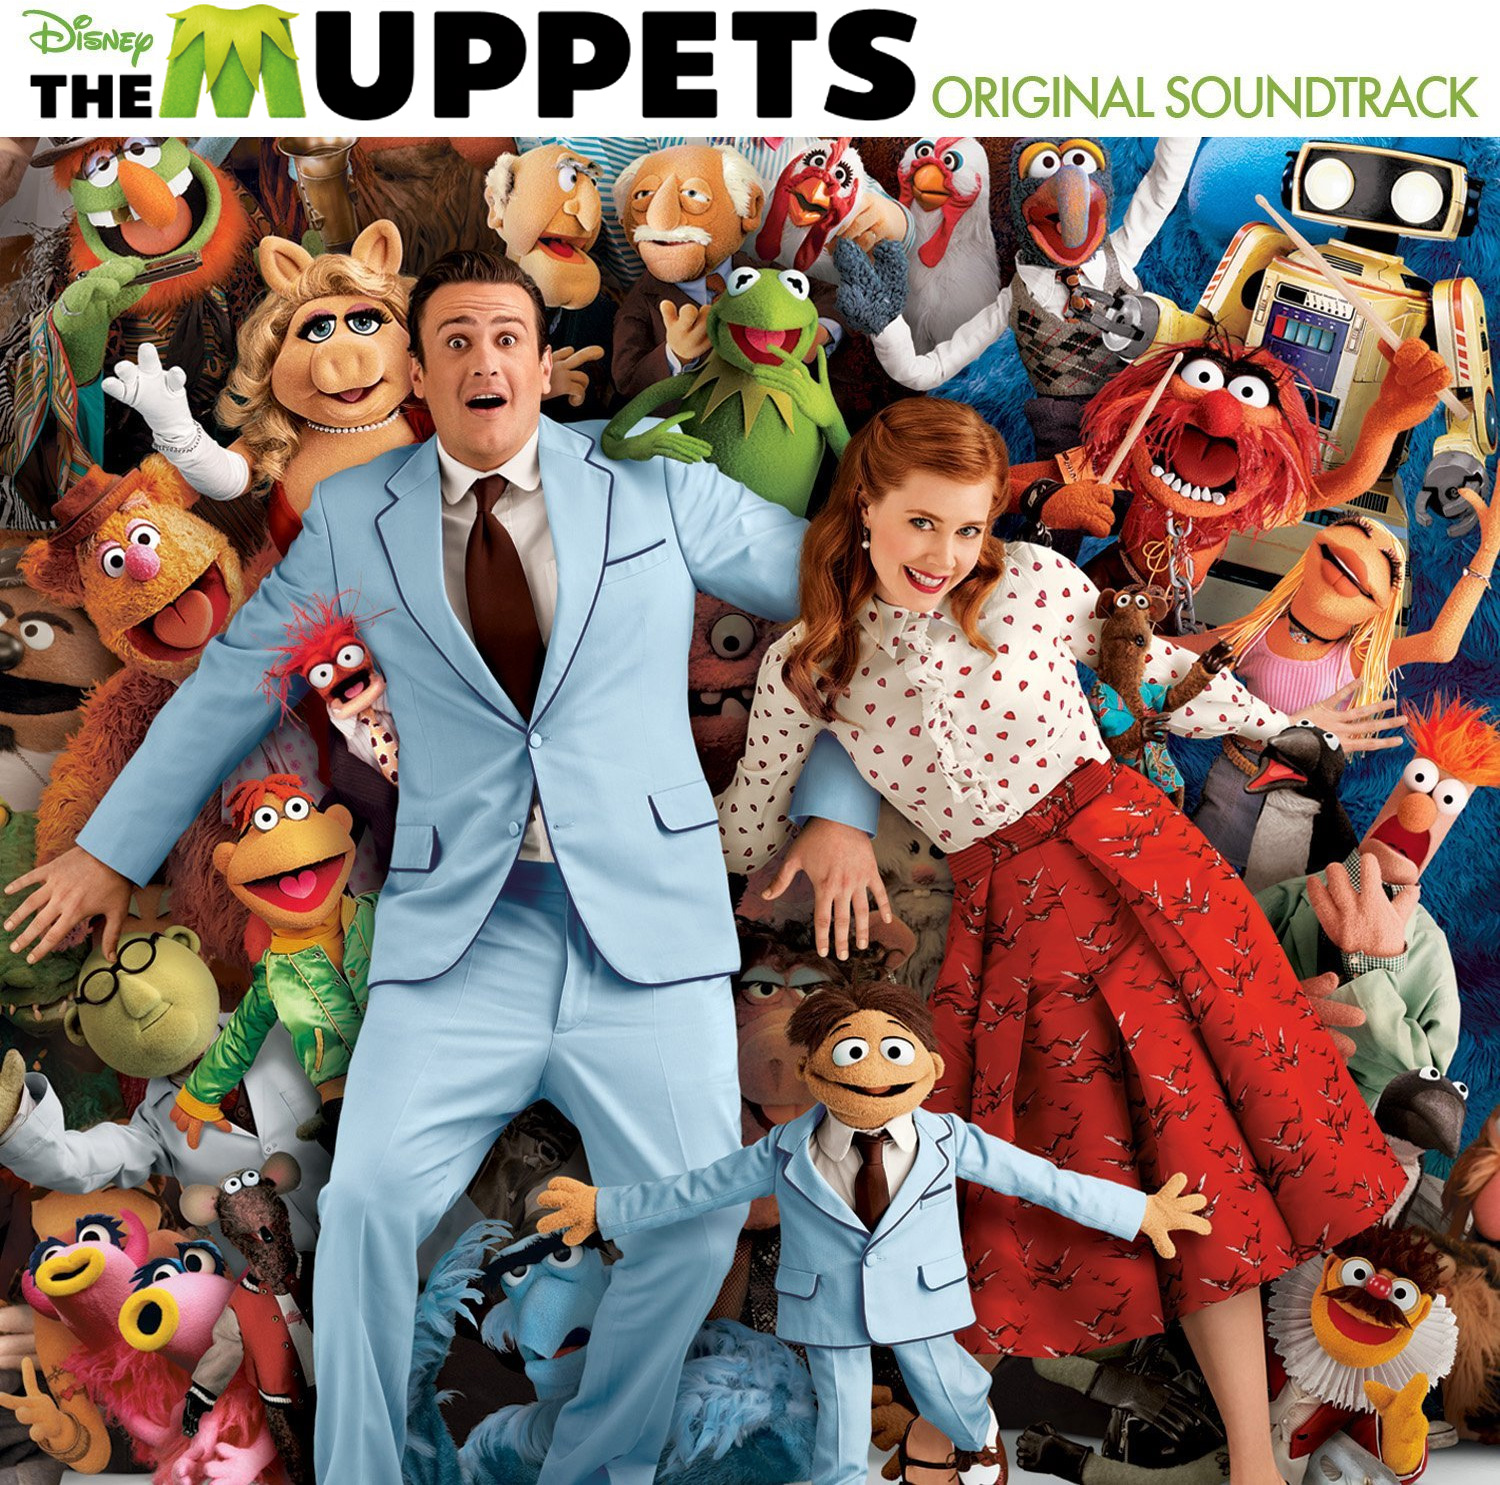 The-Muppets-Soundtrack 11.04.17 AM.jpg